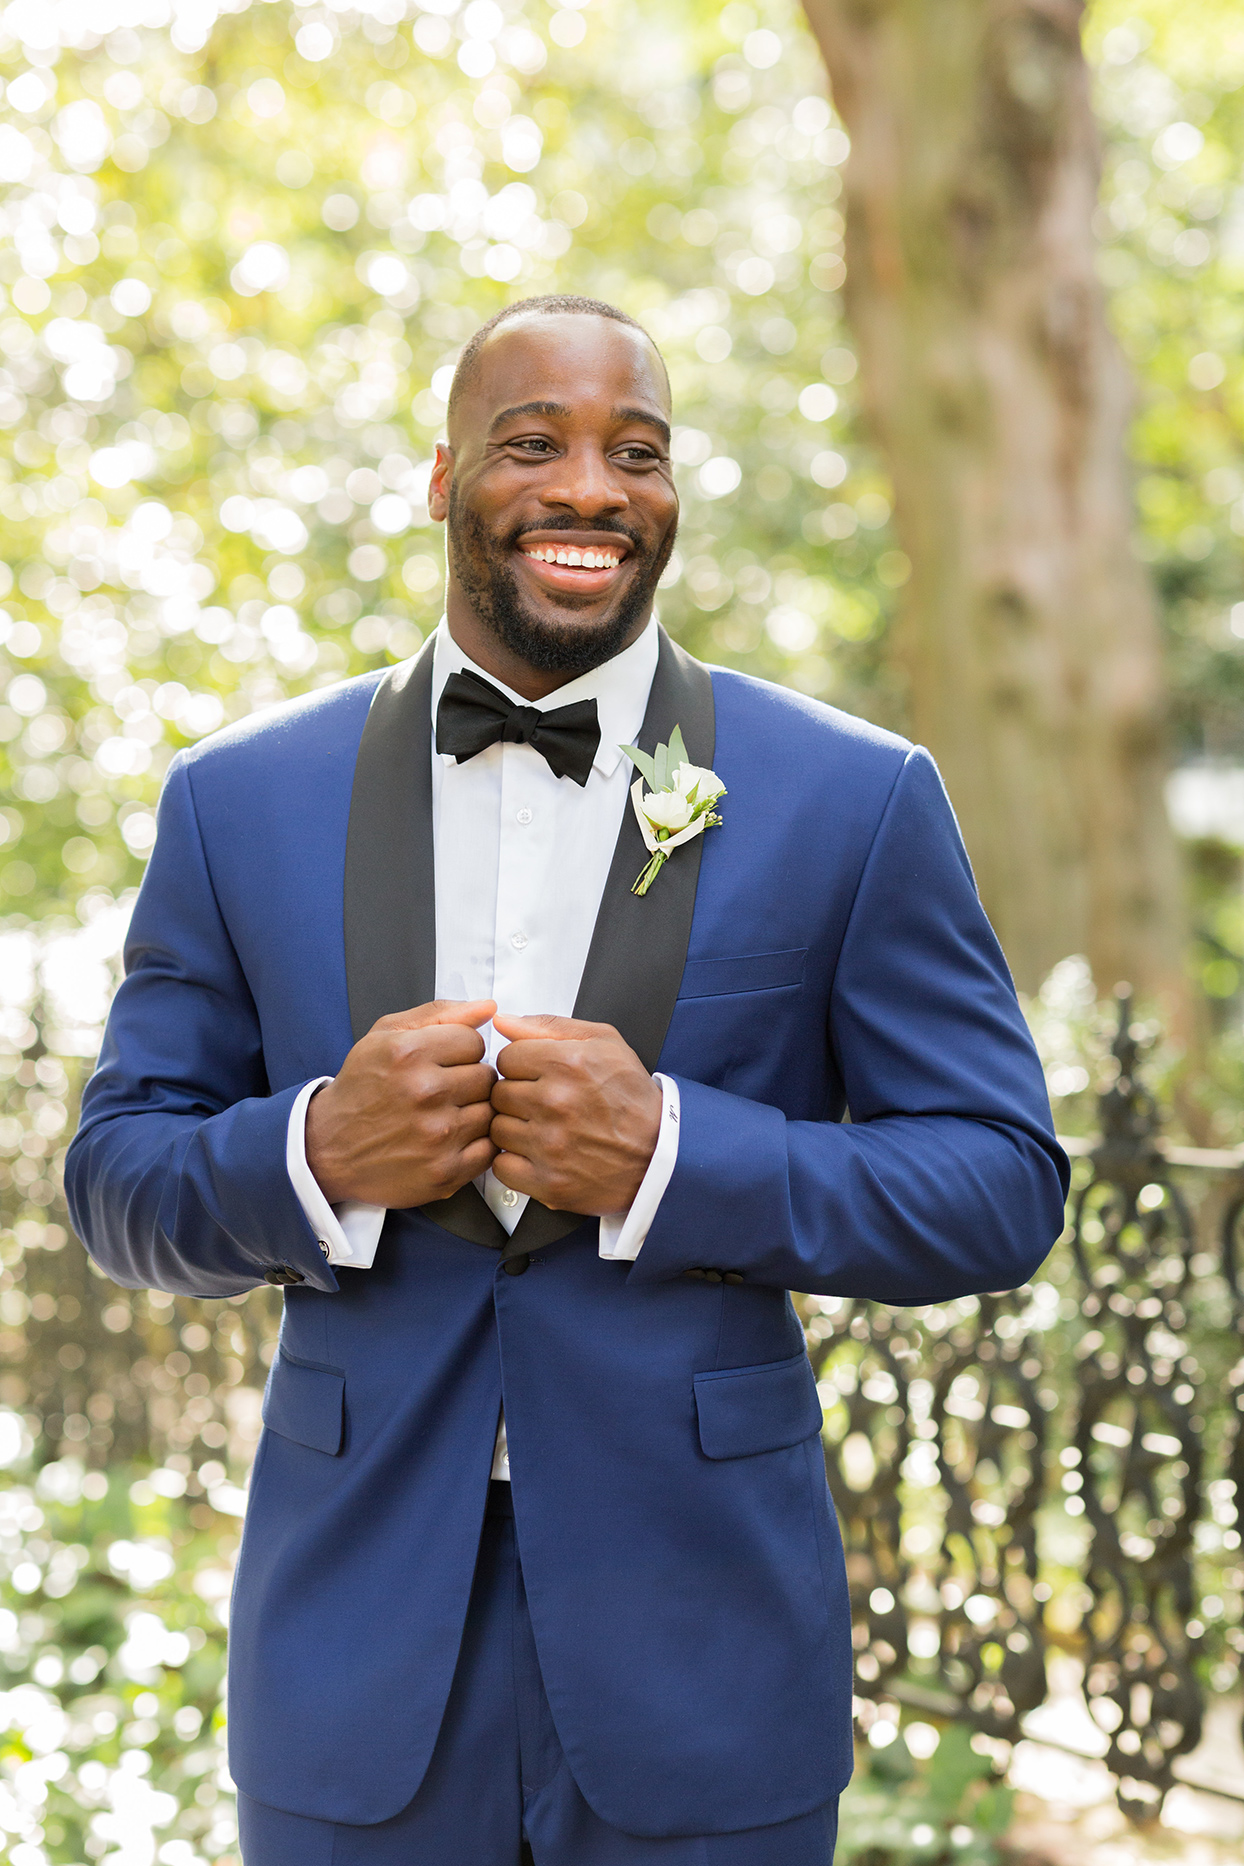 groom smiling wearing navy-blue tuxedo with bowtie